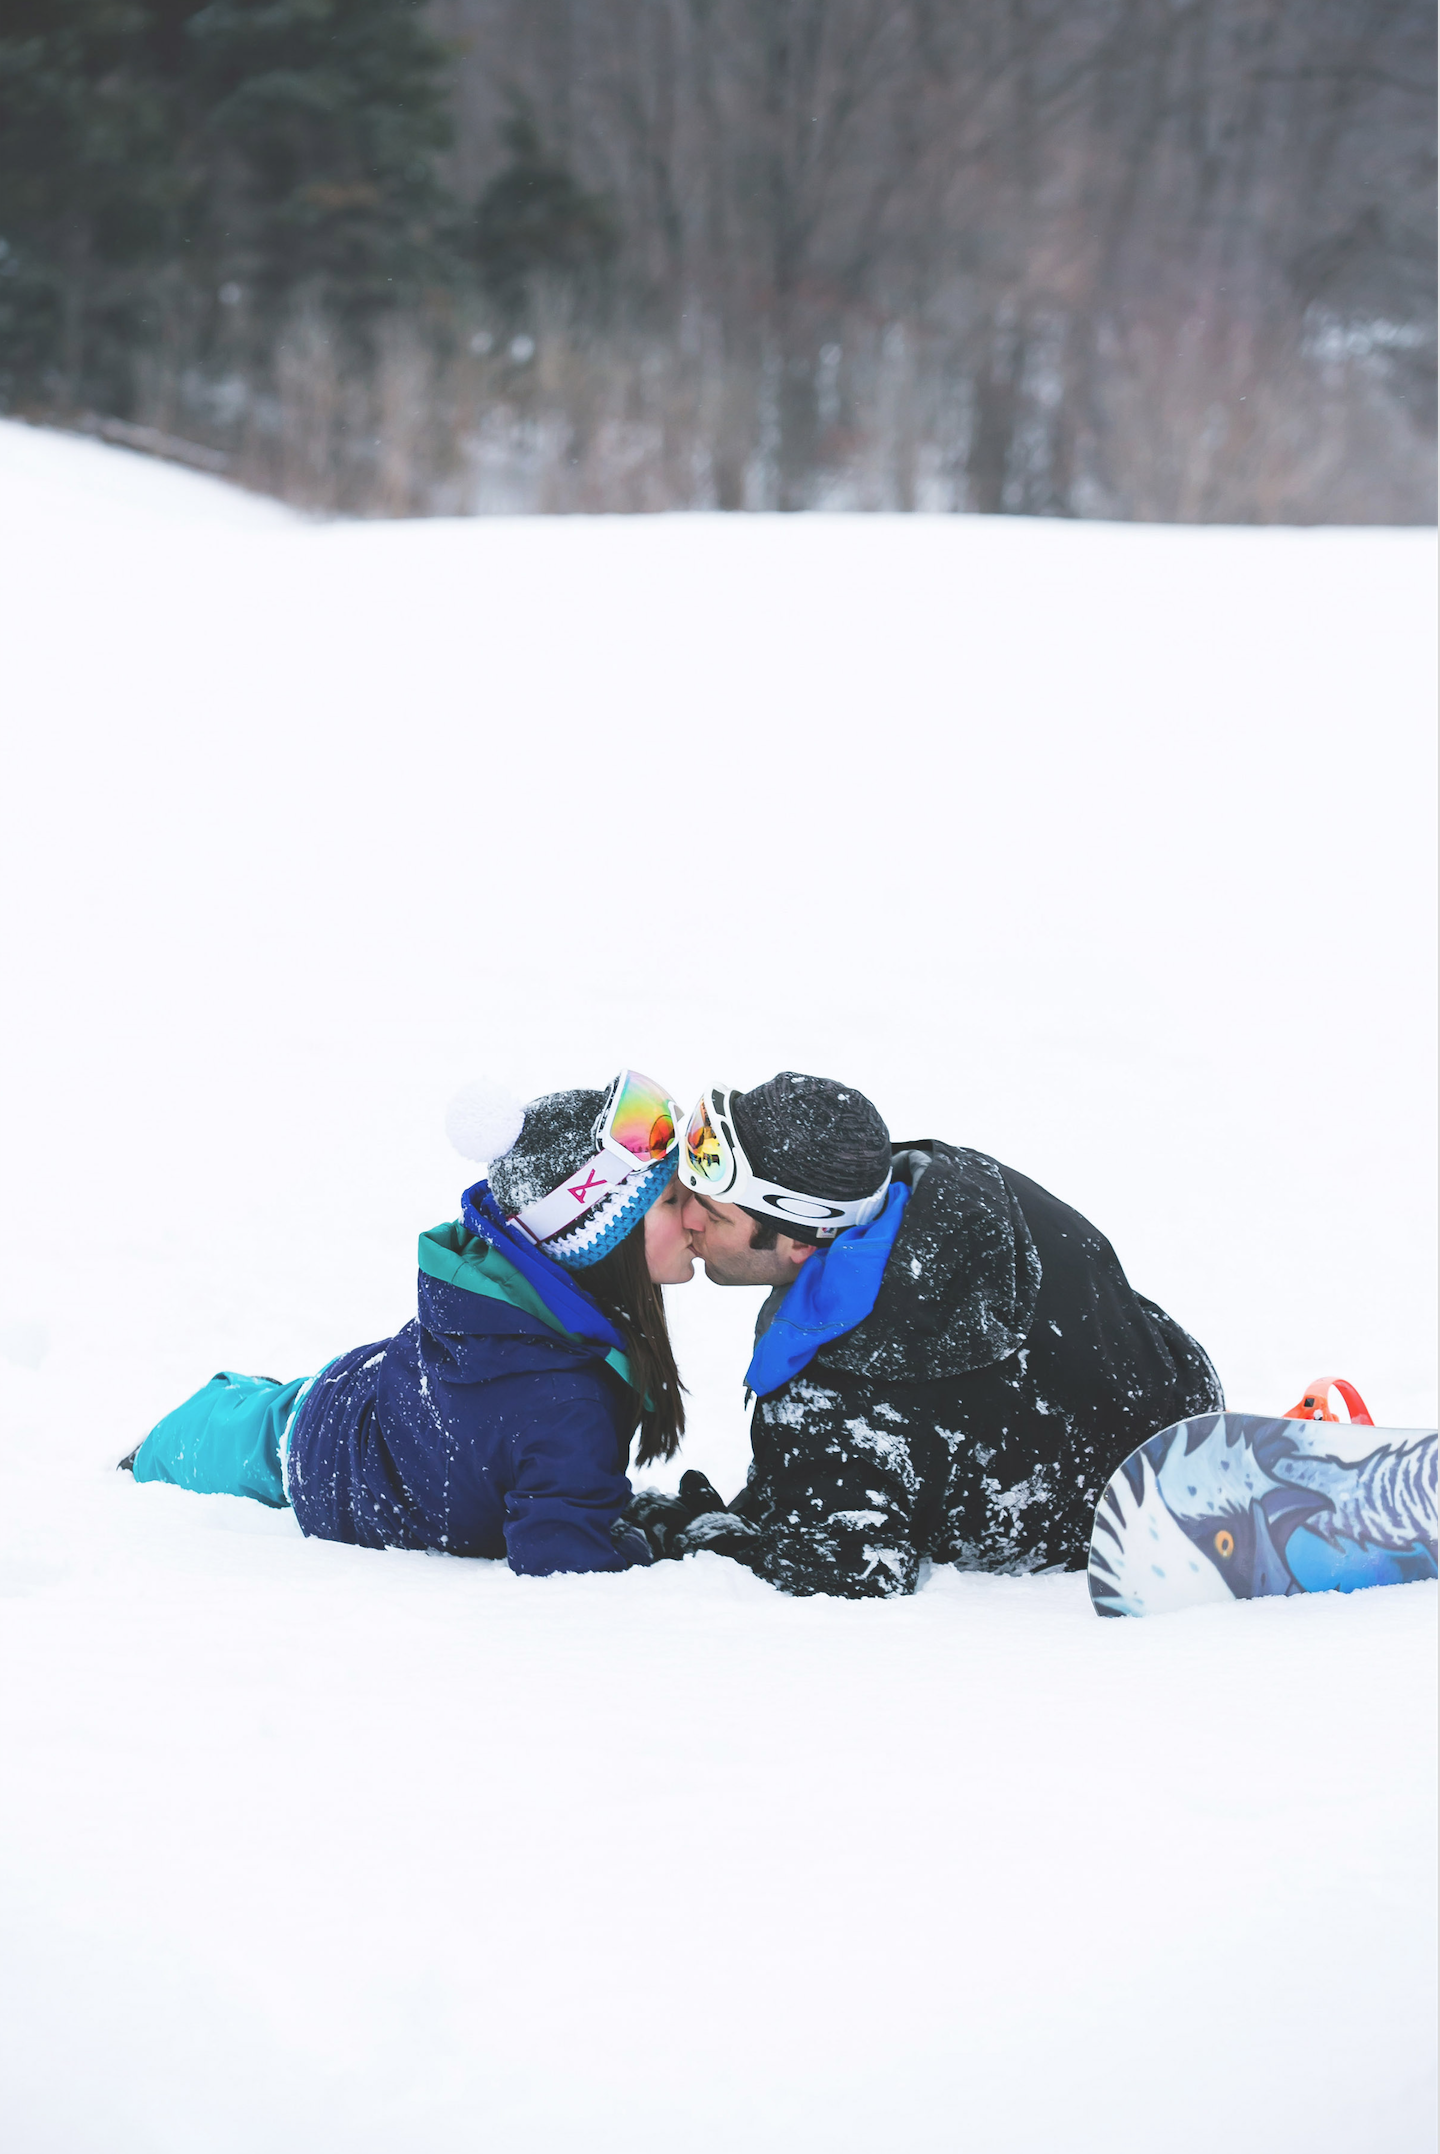 Engagement-Photos-Hamilton-Niagara-Toronto-Burlington-Oakville-Photographer-Engaged-Ring-Photography-Snowboarding-Winter-Moments-by-Lauren-Image-21.png